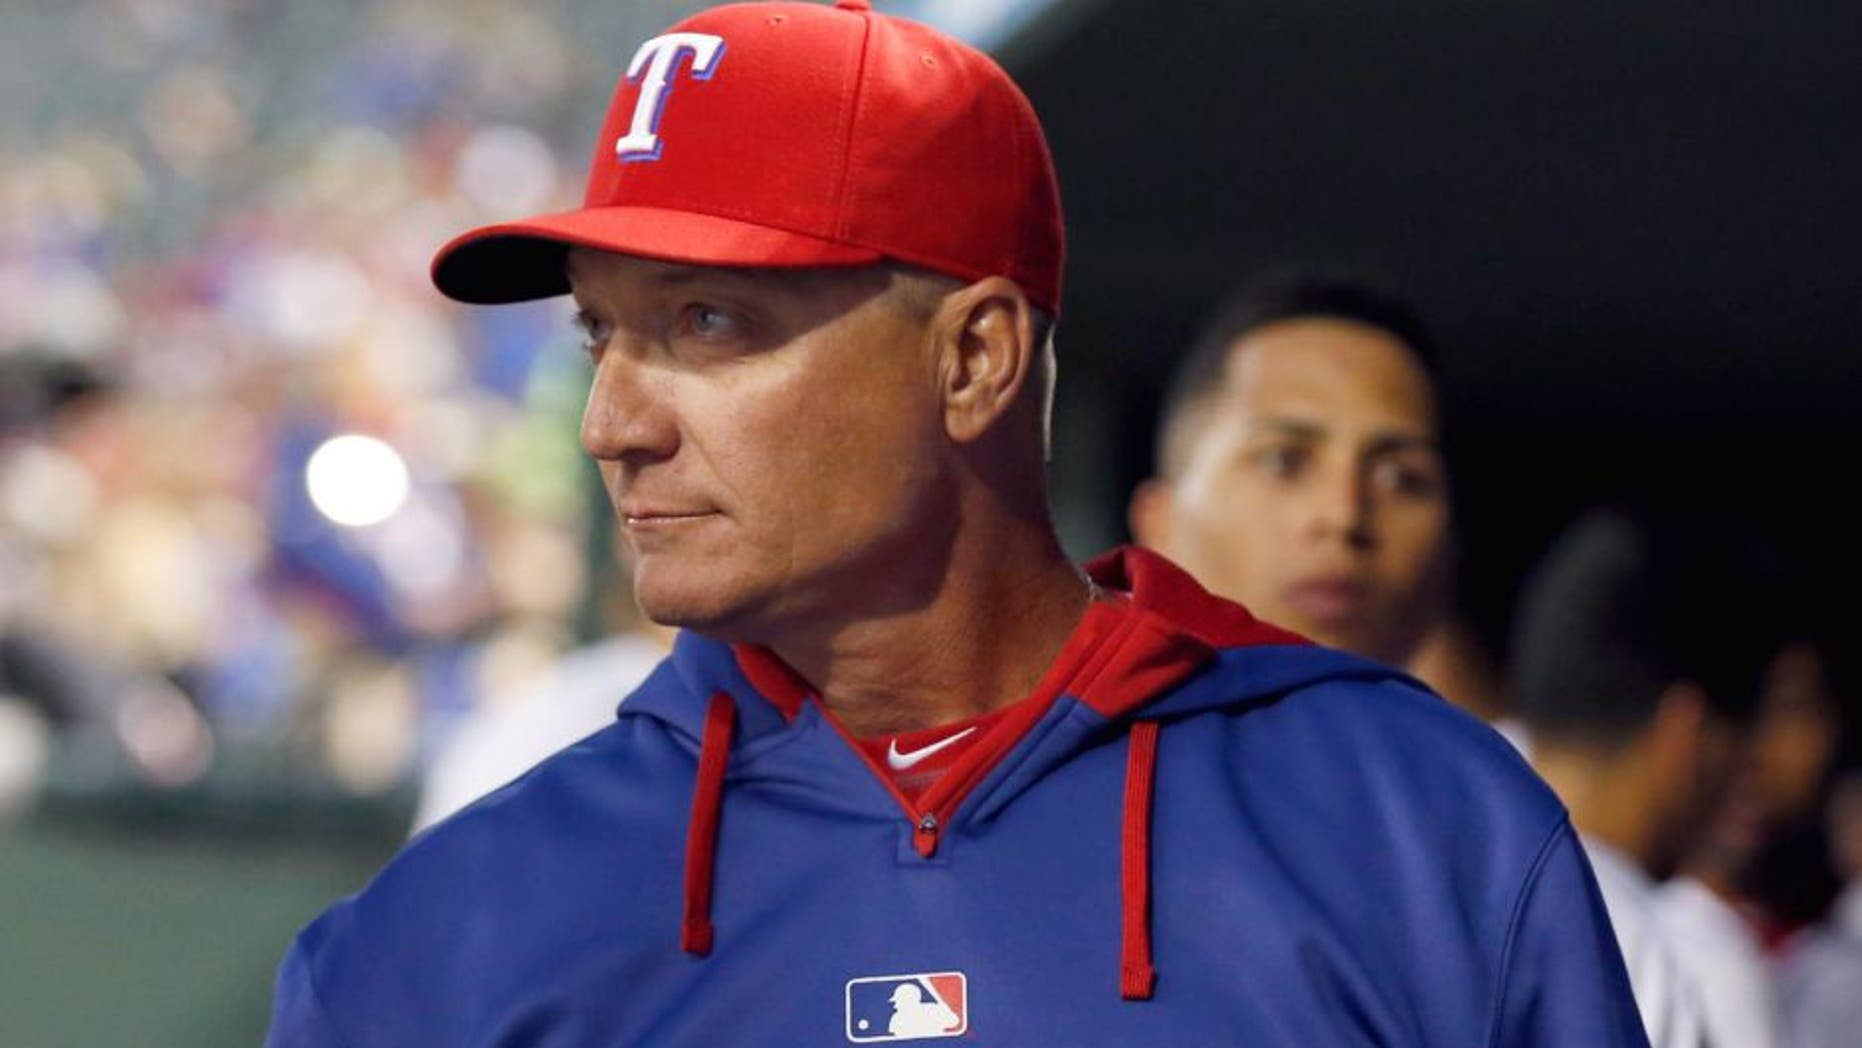 Apr 13, 2015; Arlington, TX, USA; Texas Rangers manager Jeff Banister in the dugout during the game against the Los Angeles Angels at Globe Life Park in Arlington. Mandatory Credit: Matthew Emmons-USA TODAY Sports